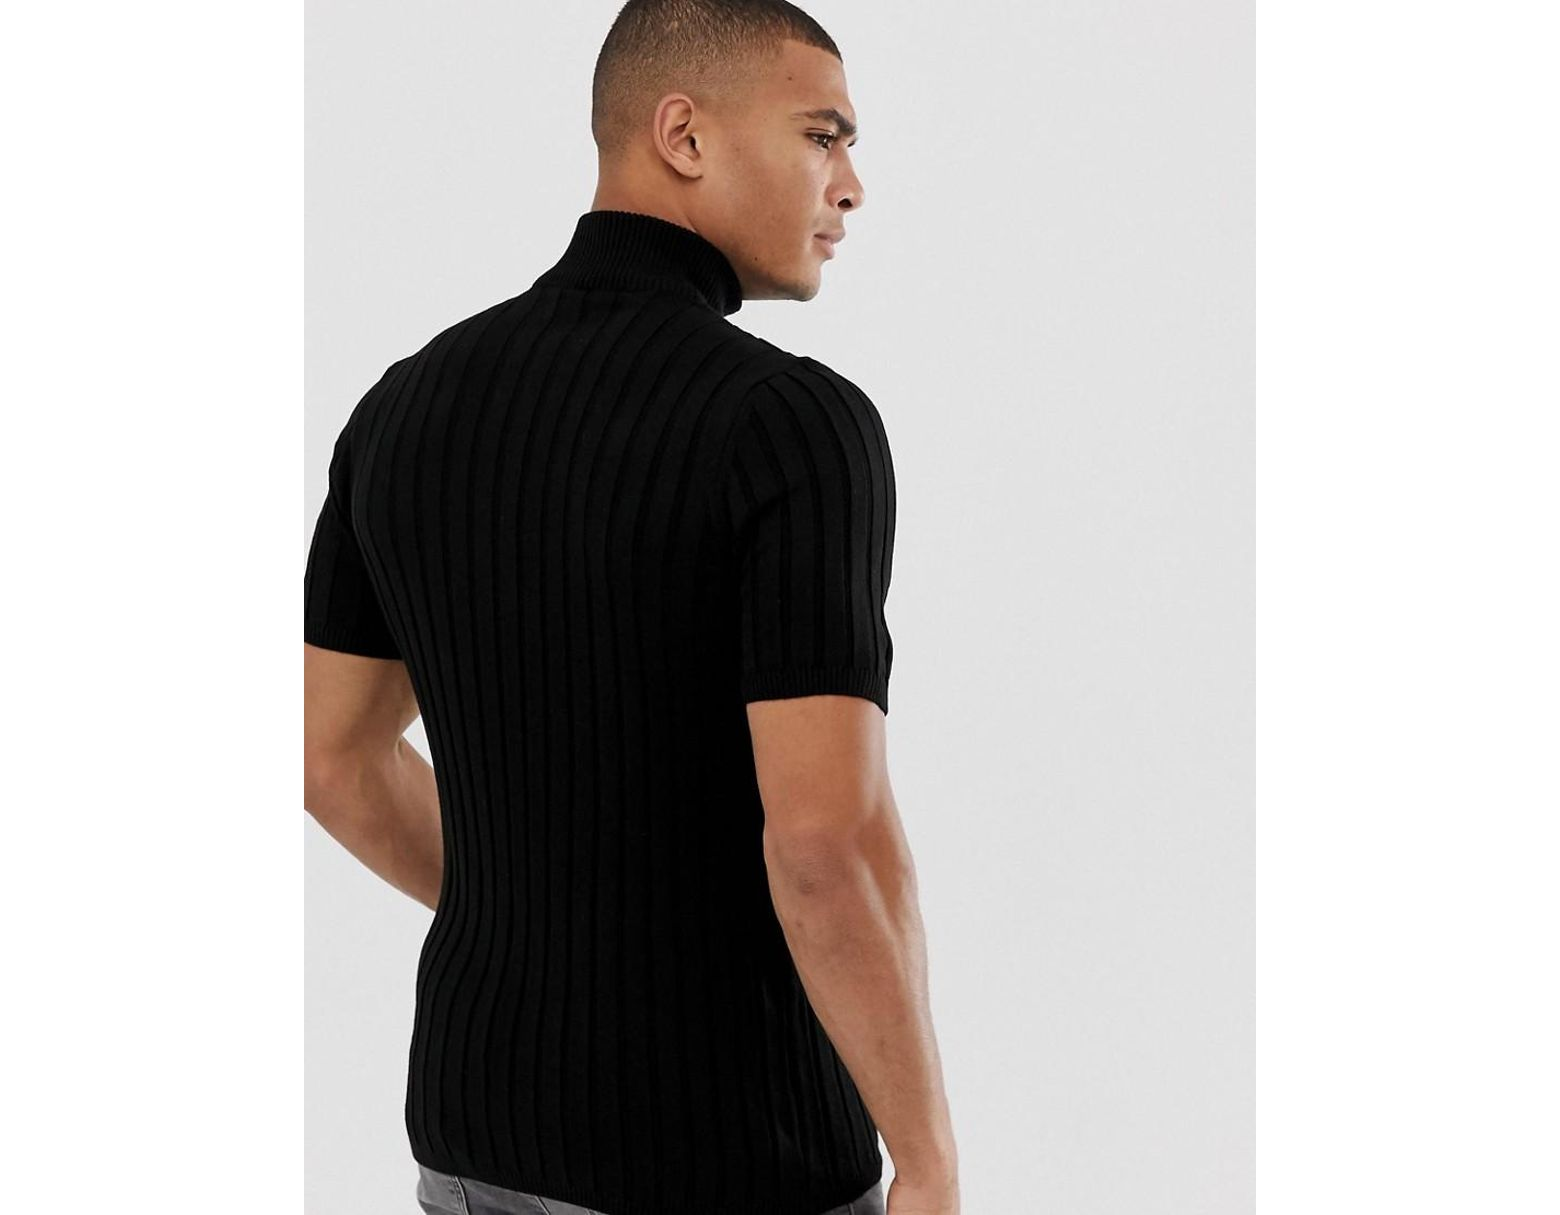 616db78c ASOS Muscle Fit Knitted T-shirt With Half Zip In Black in Black for Men -  Lyst